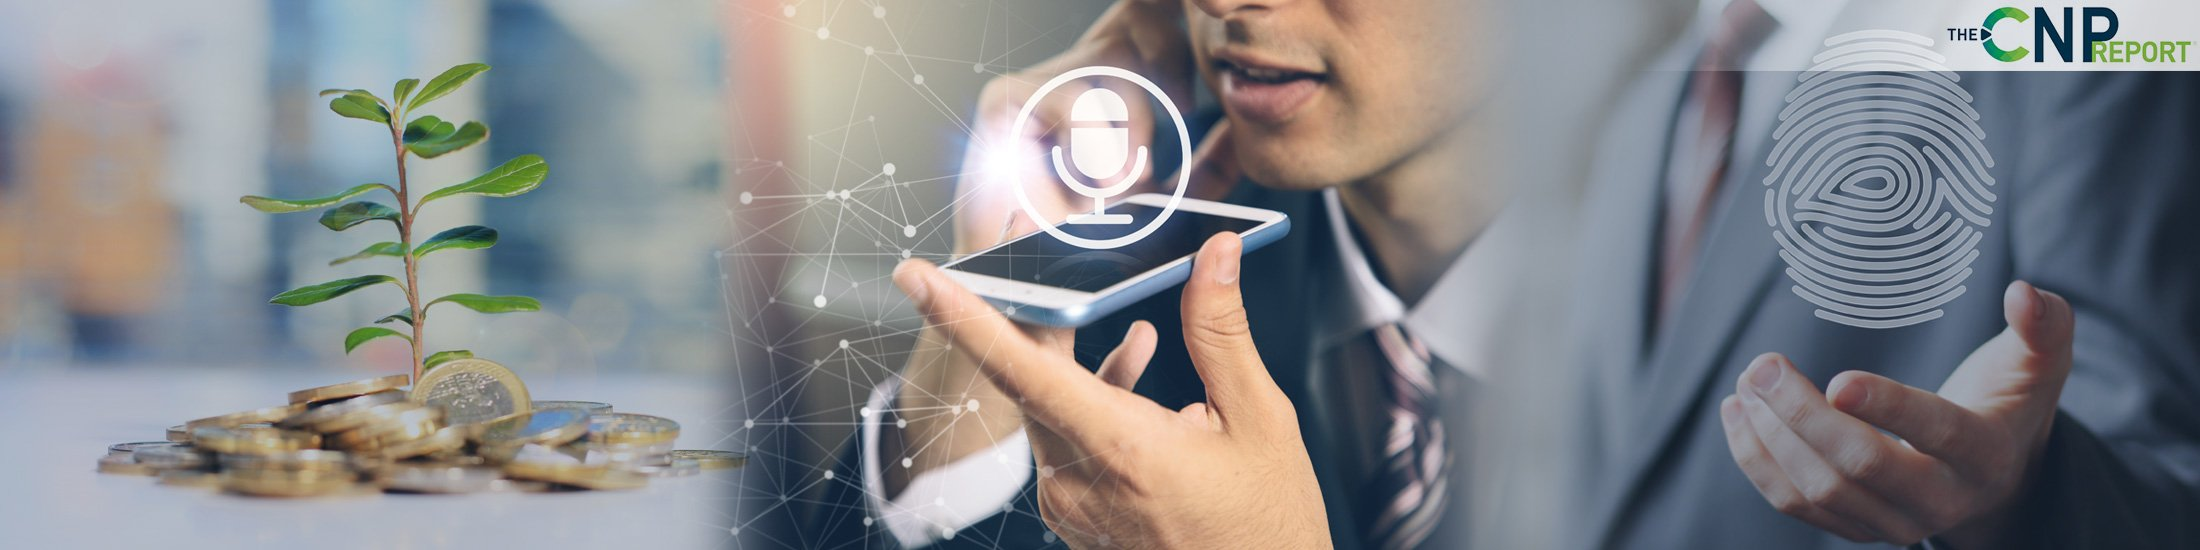 Voice Authentication Firm Nets $90 Million in New Funding